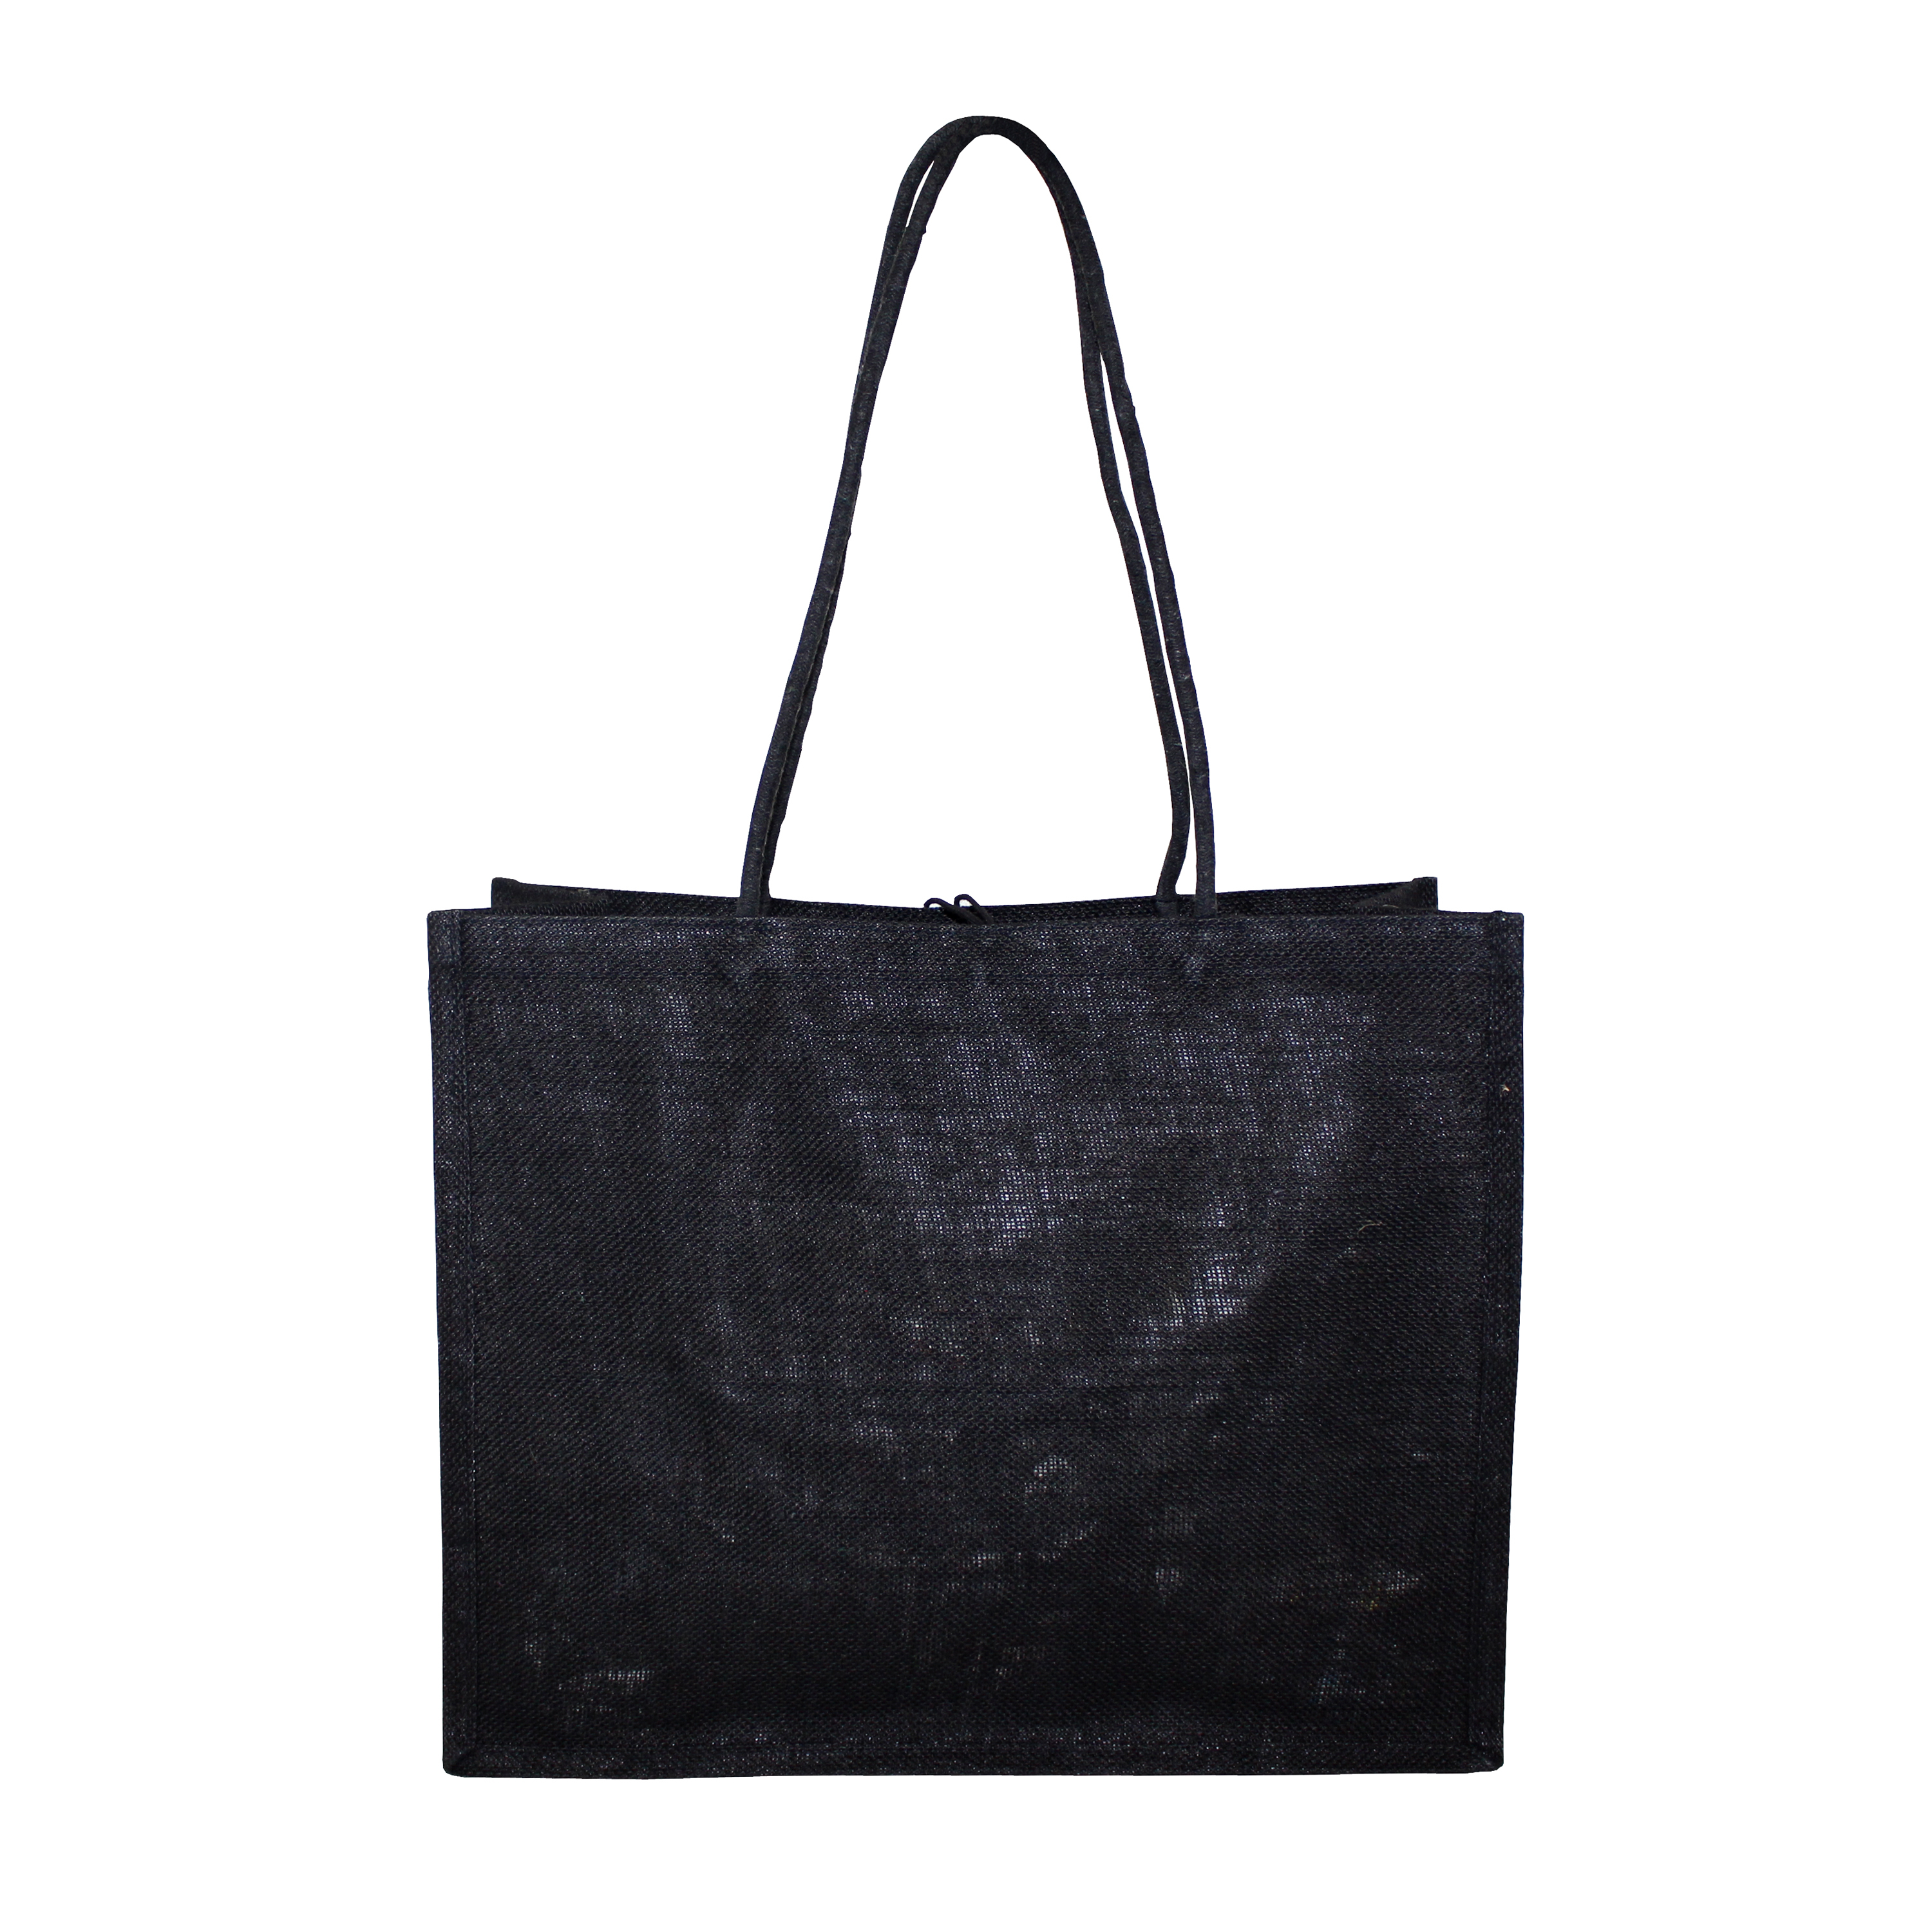 PP Laminated Jute Bag With Front Pocket